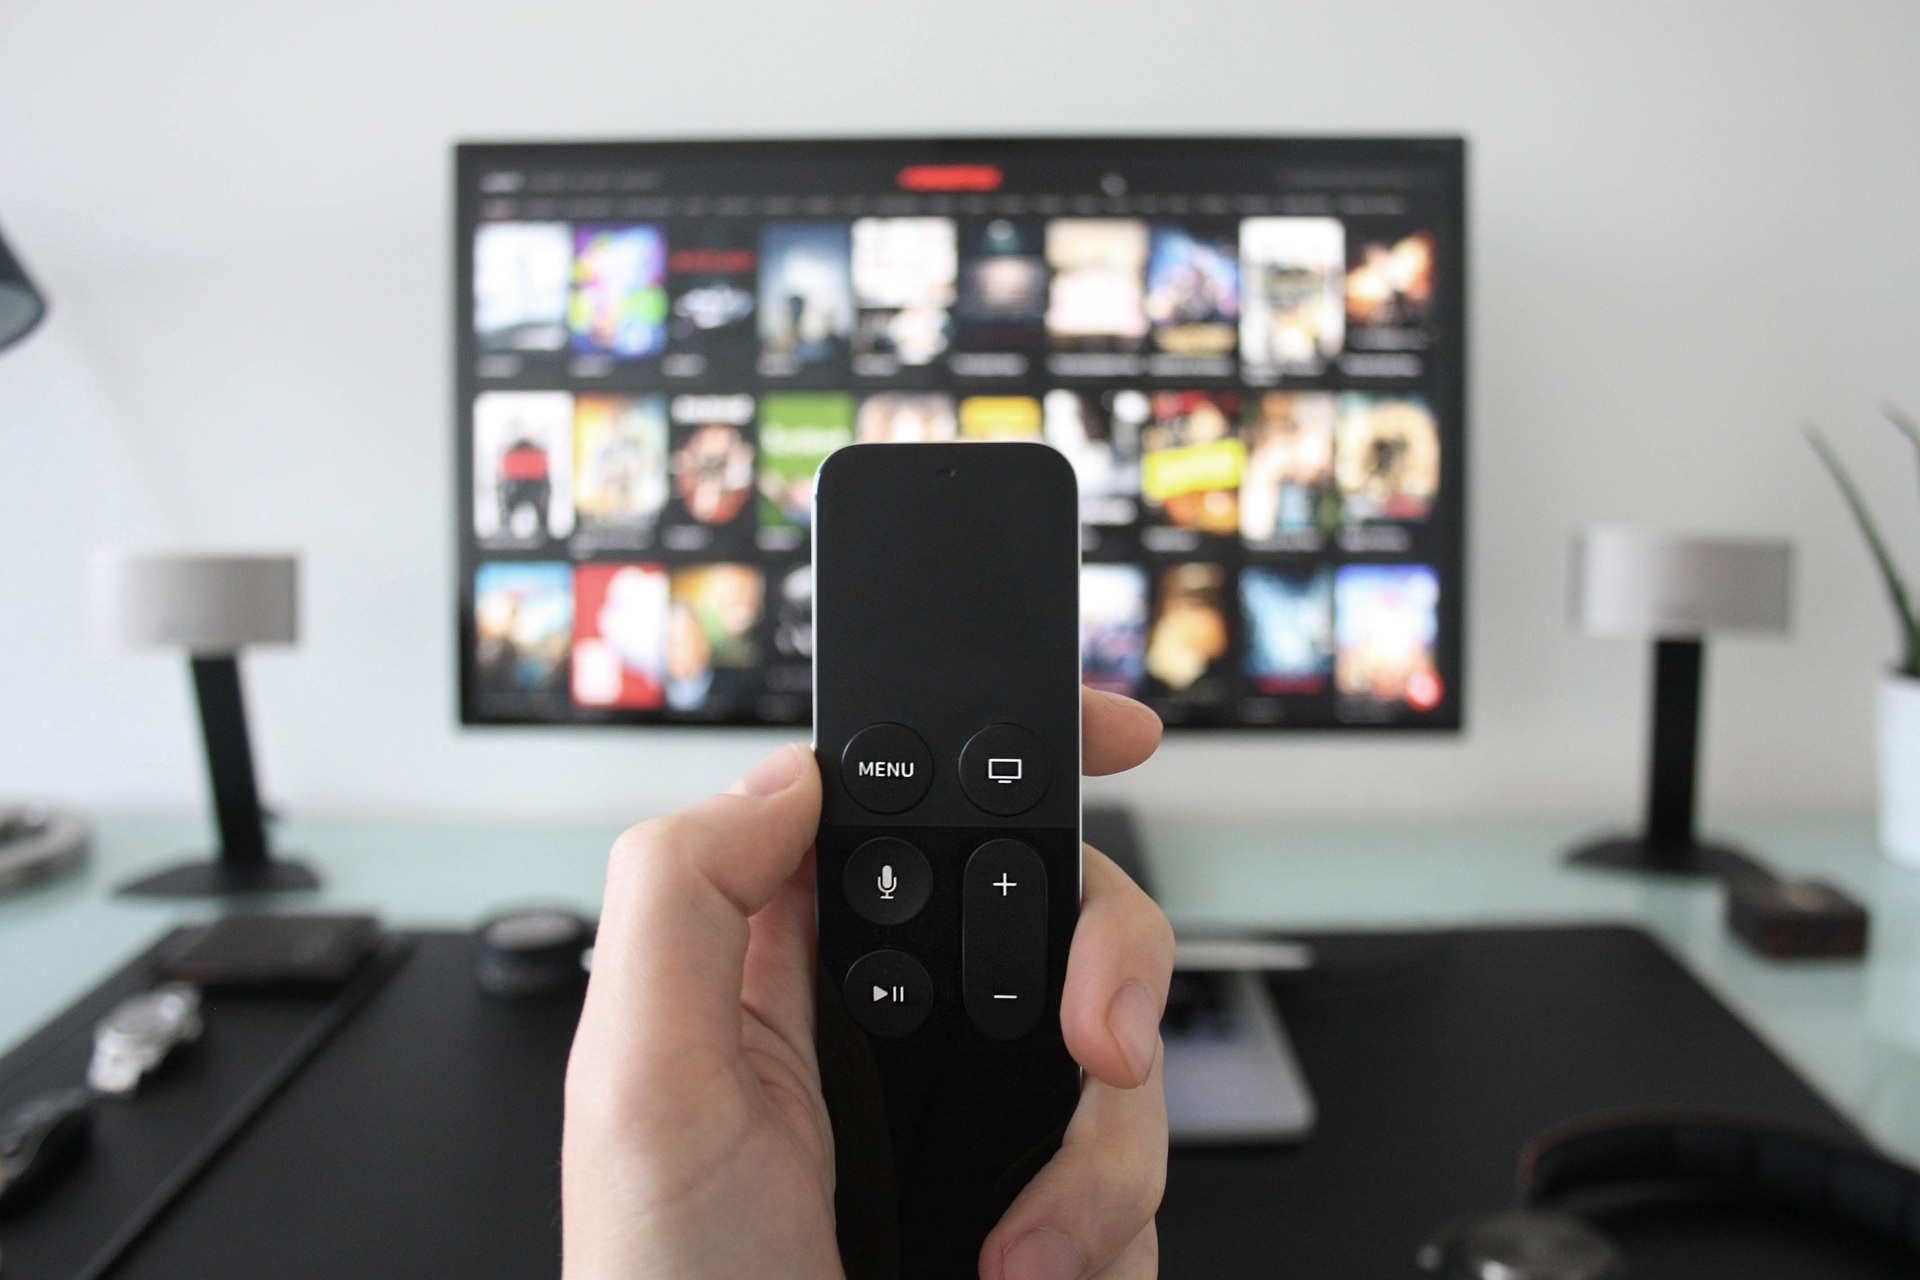 Remote and television in room